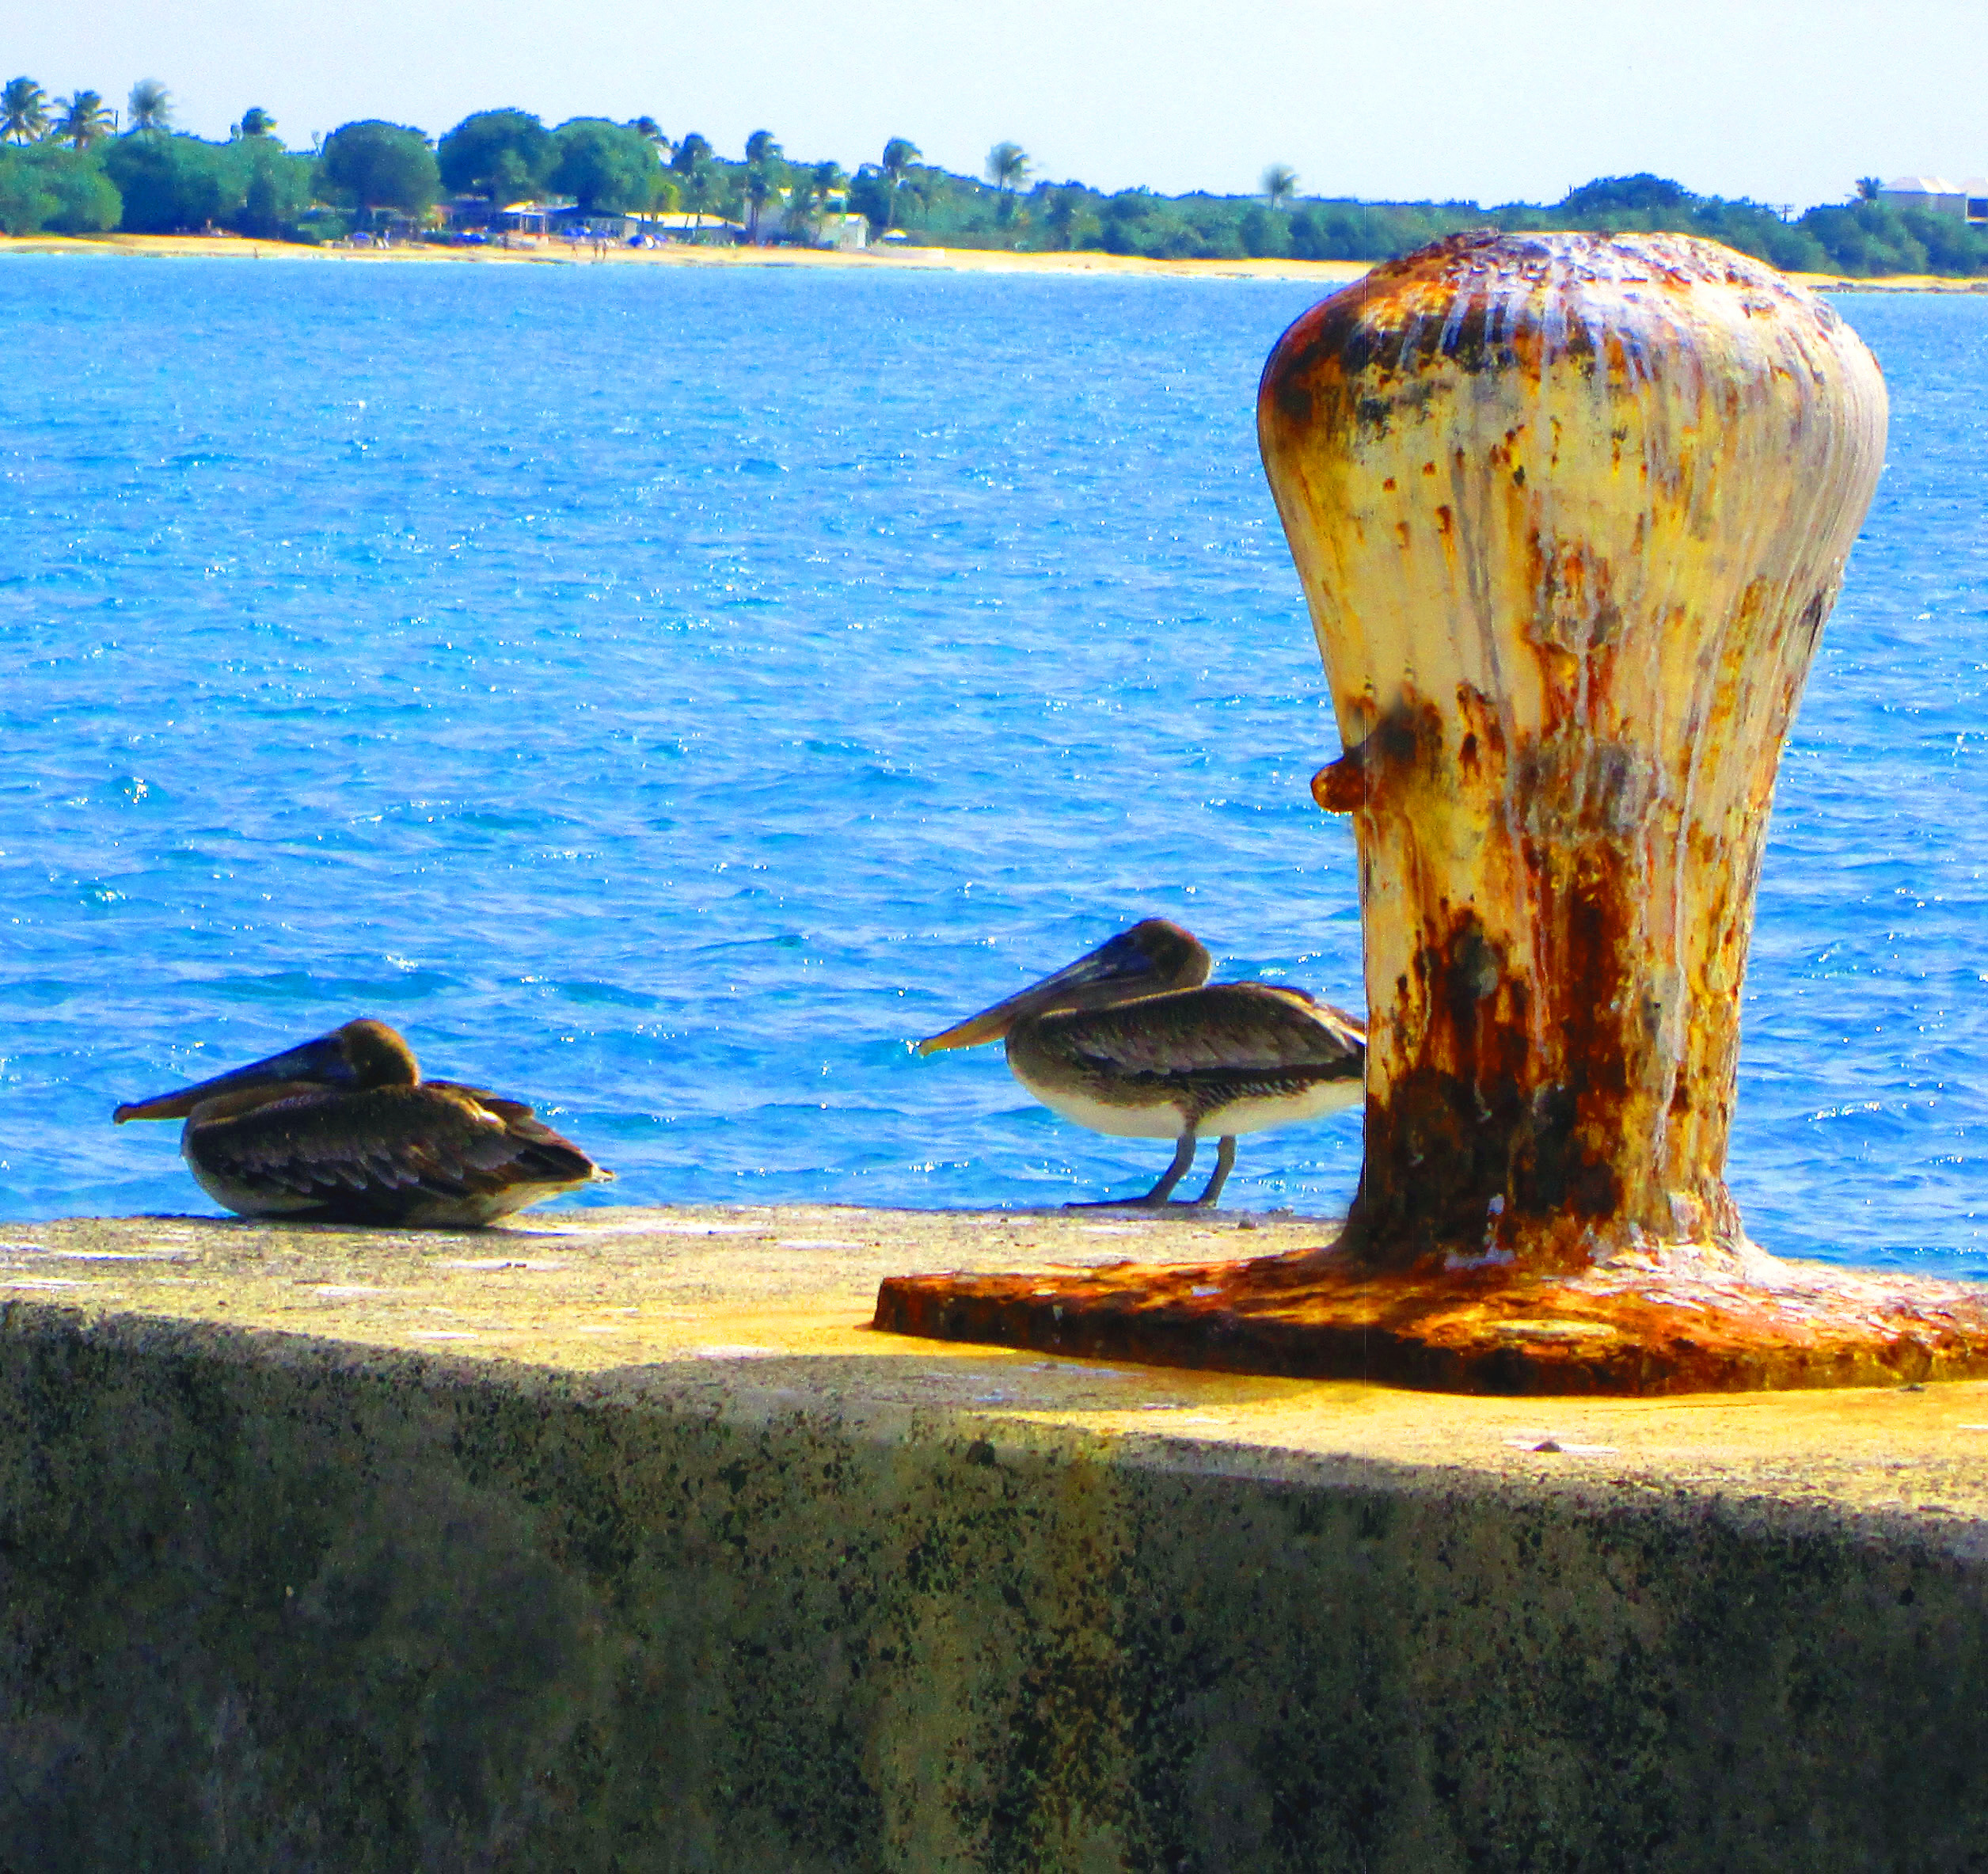 Pair Of Pelicans On Mooring Bollard In St Croix